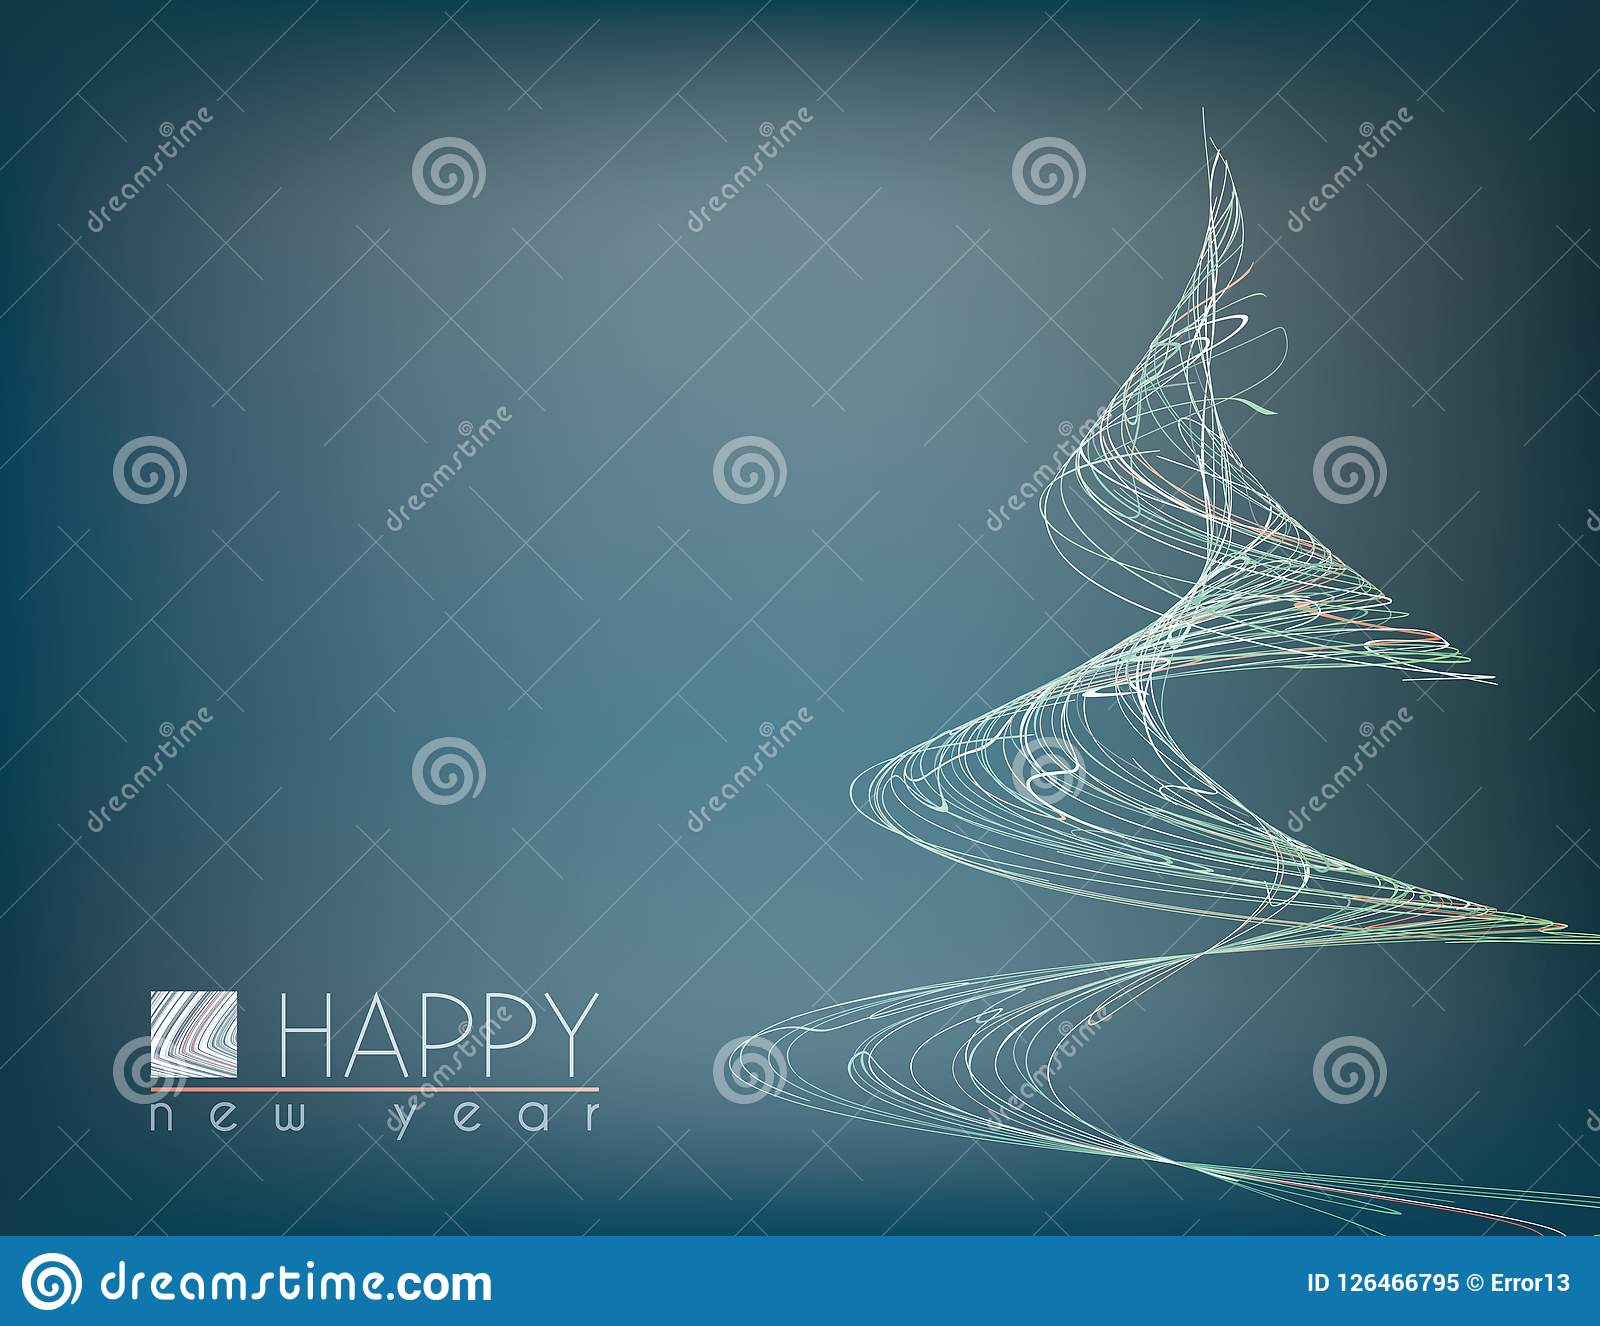 minimal happy new year card with unusual christmas tree